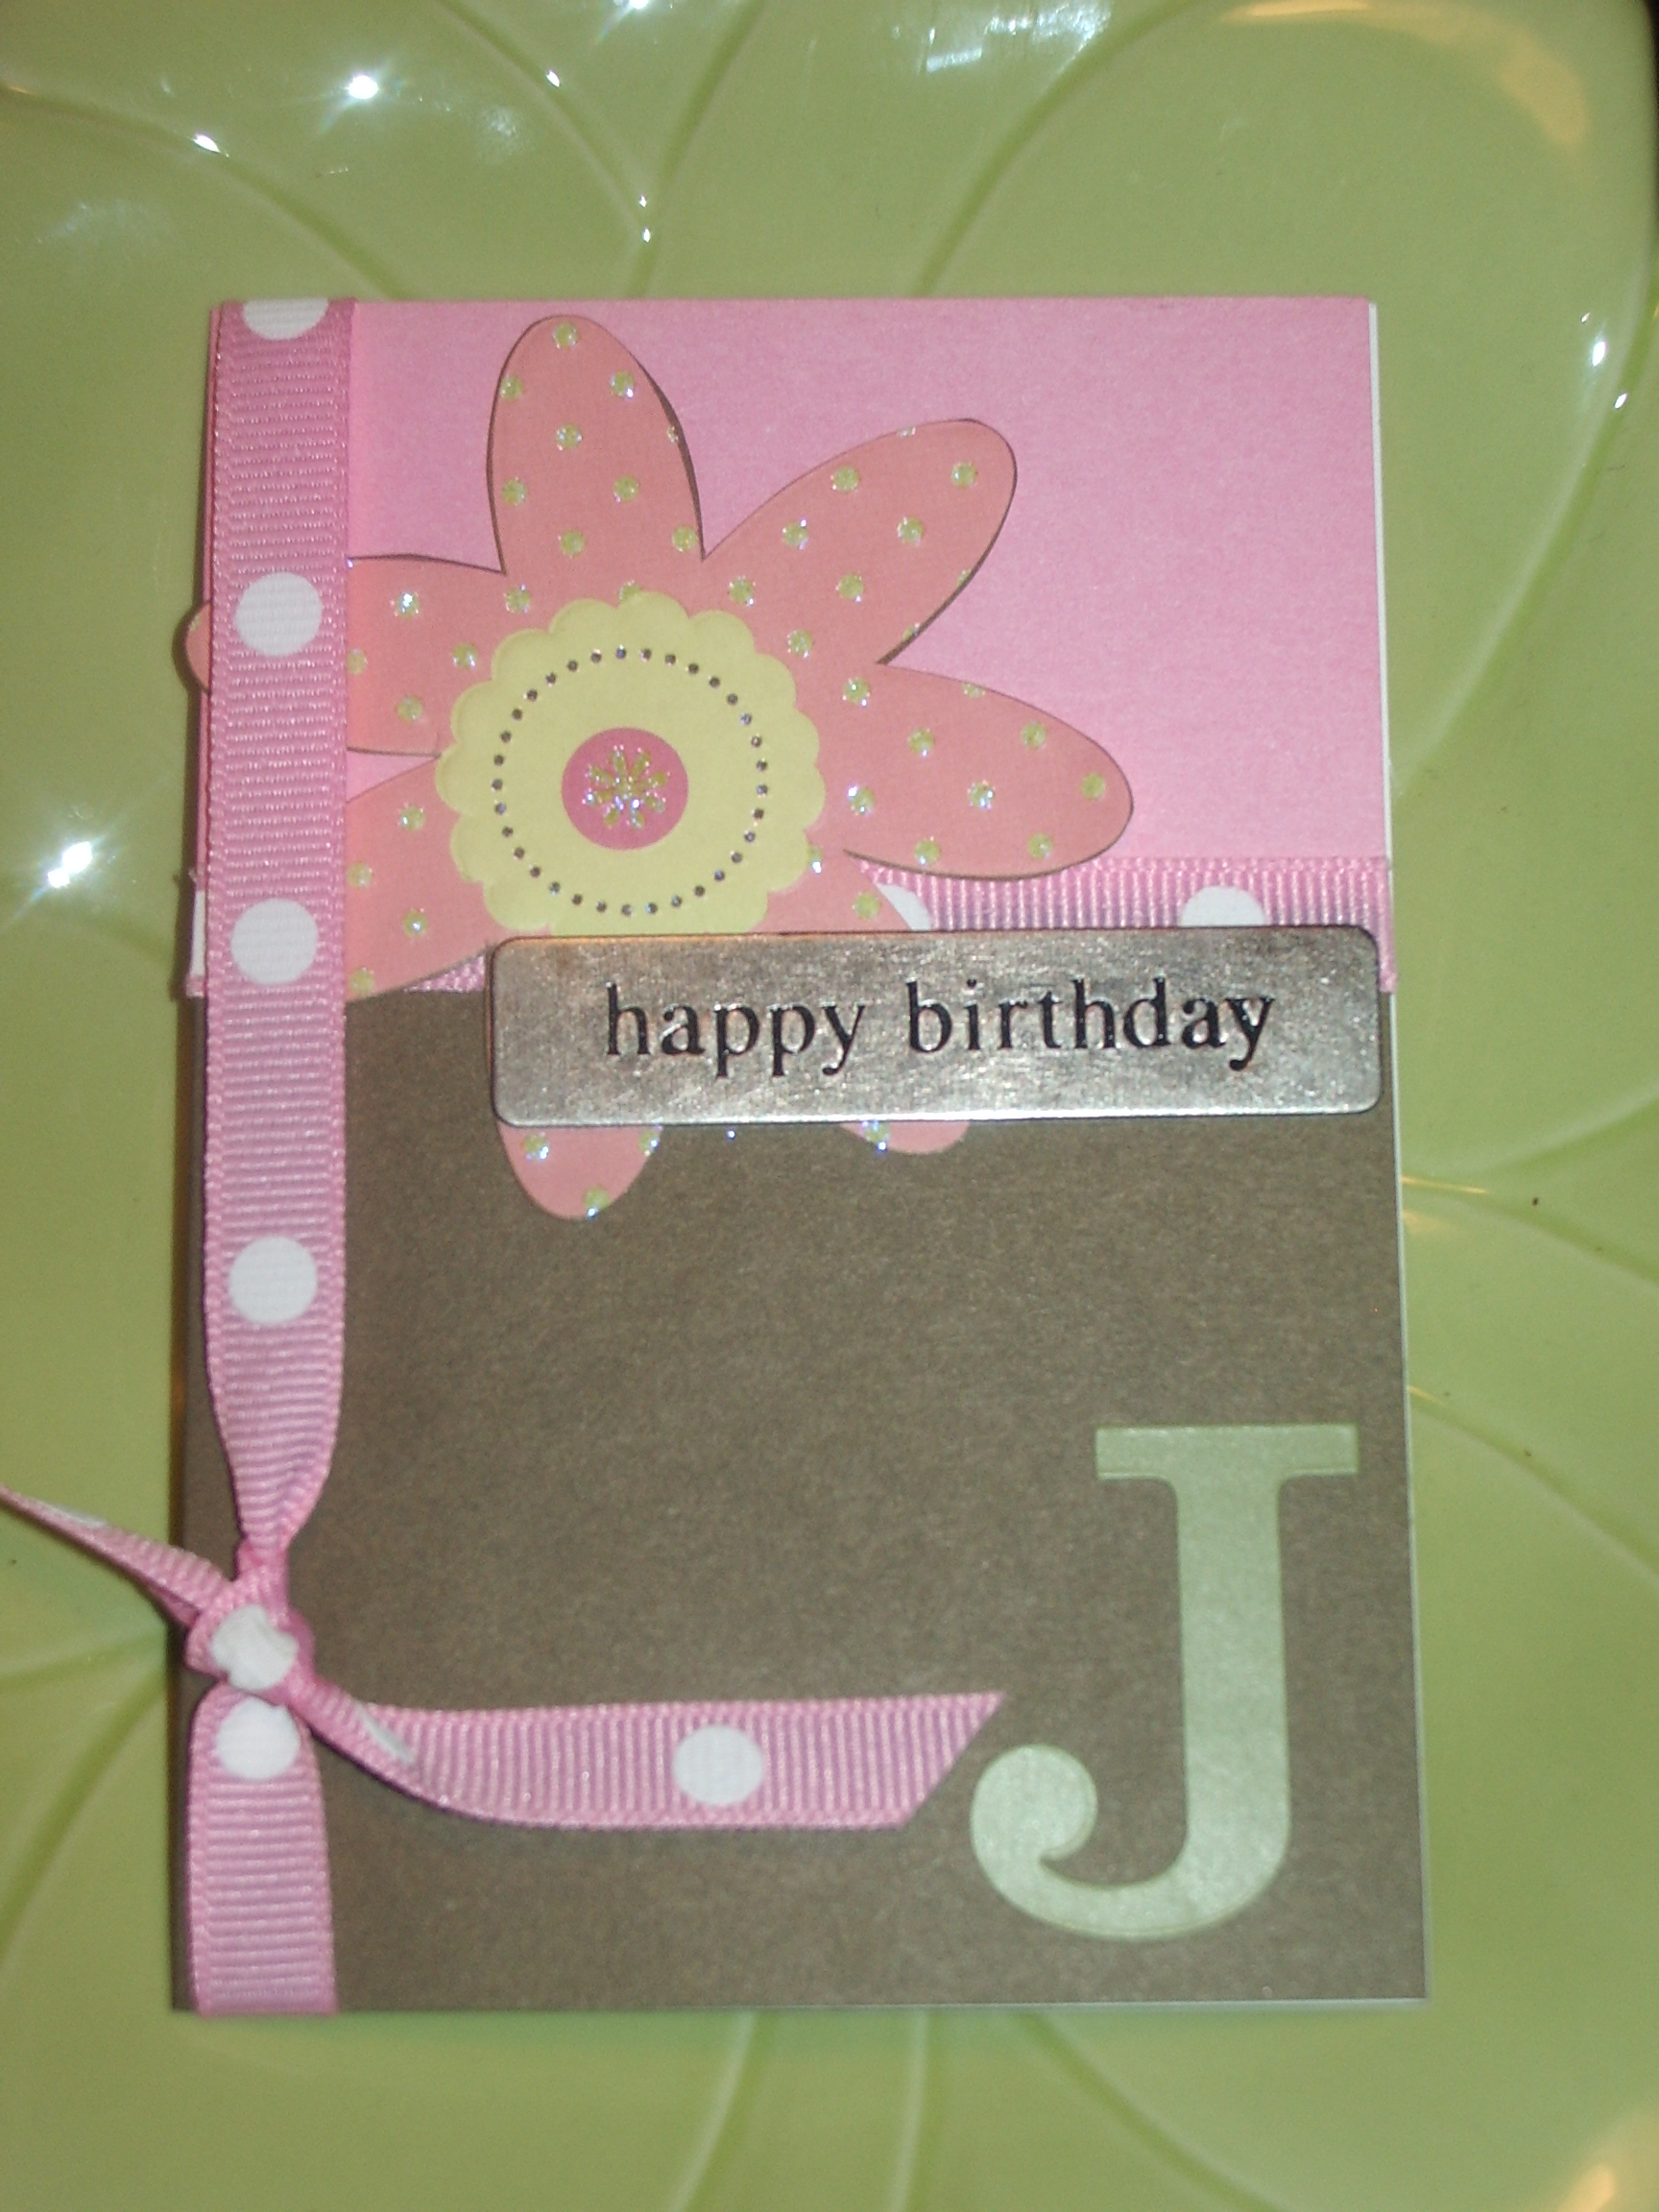 Ideas For Making Birthday Cards At Home Gotta Make It Handmade Birthday Card Inspireme Crafts